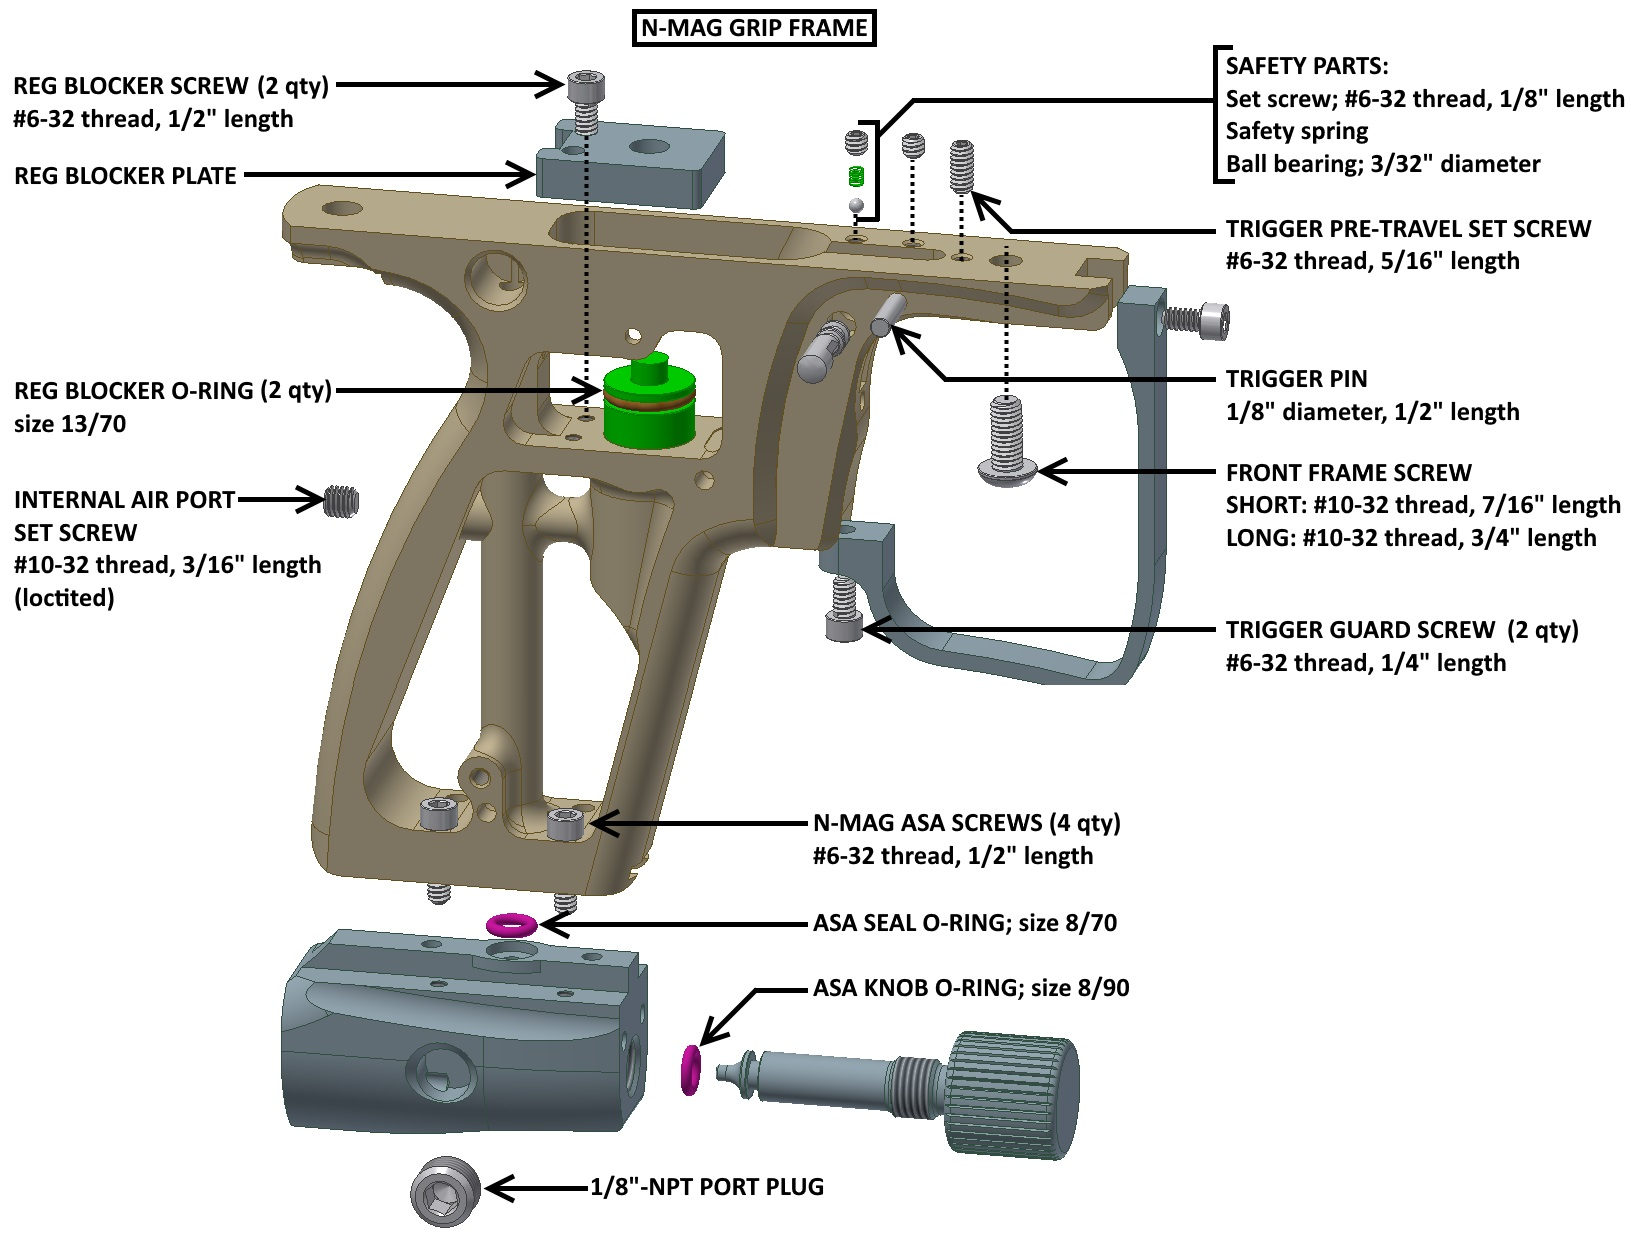 automag parts diagram automotive steering parts diagram nummech - nmag mech grip frame